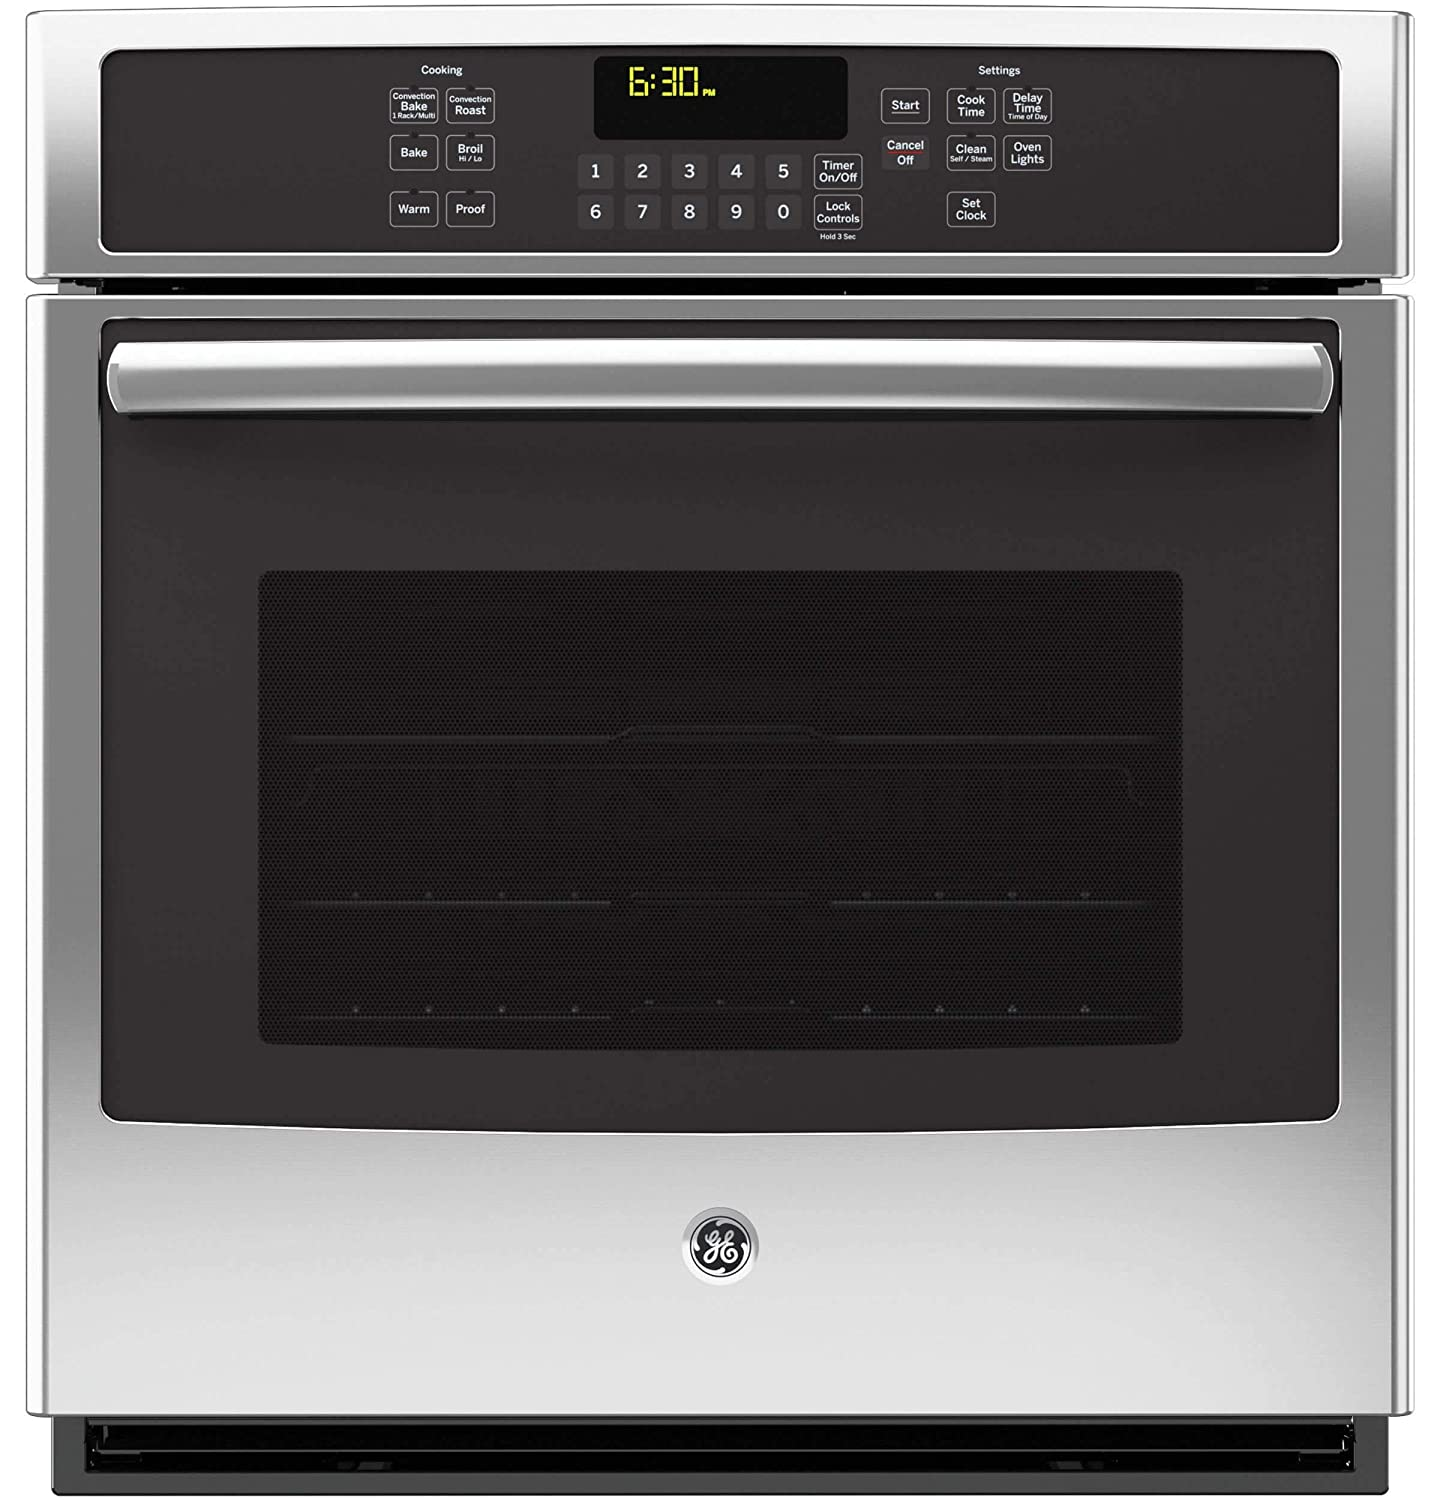 """GE JK5000SFSS 27"""" Stainless Steel Electric Single Wall Oven - Convection (Certified Refurbished)"""